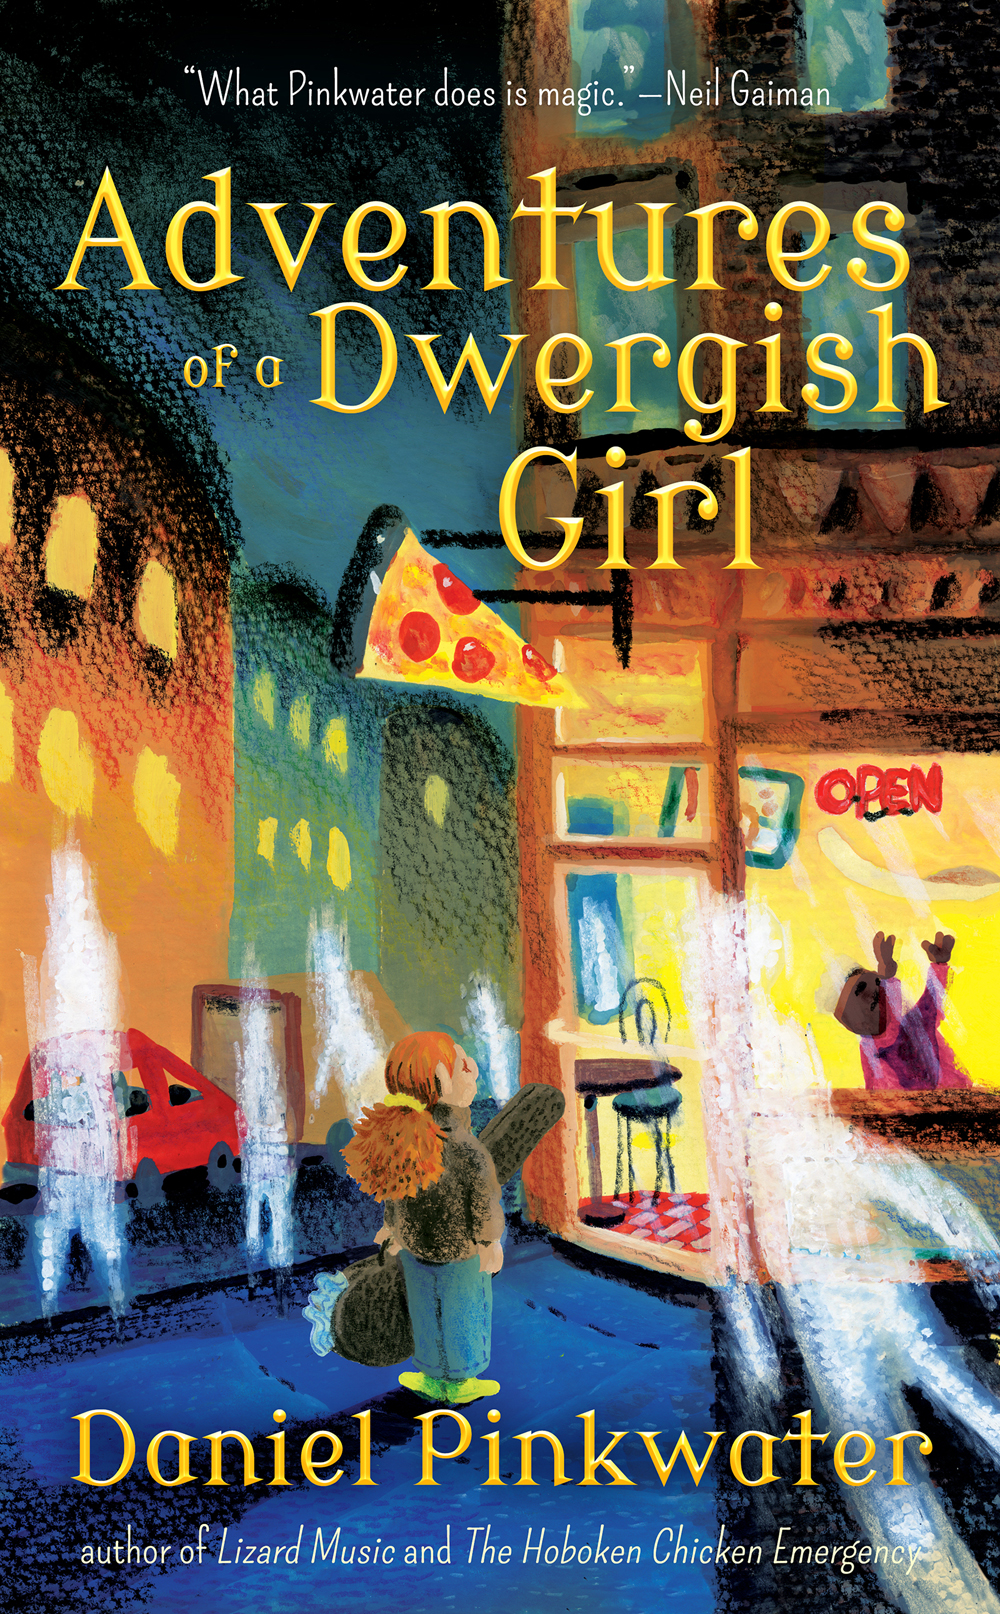 Adventures Of A Dwergish Girl By Daniel Pinkwater Release Date? 2020 Children's Fiction Releases